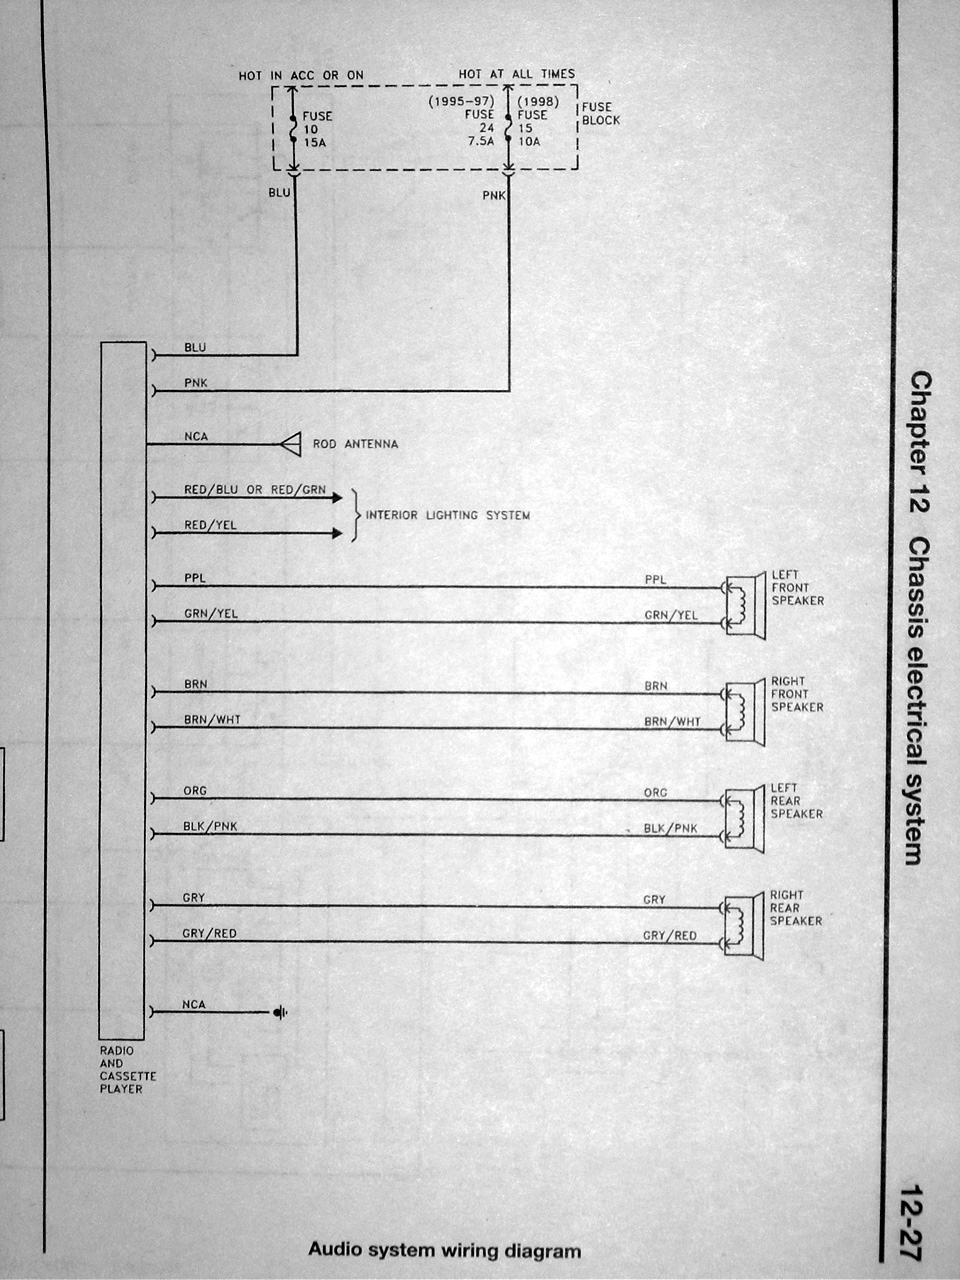 DSC01849 wiring diagram thread *useful info* nissan forum 2005 nissan 350z headlight wiring diagram at crackthecode.co